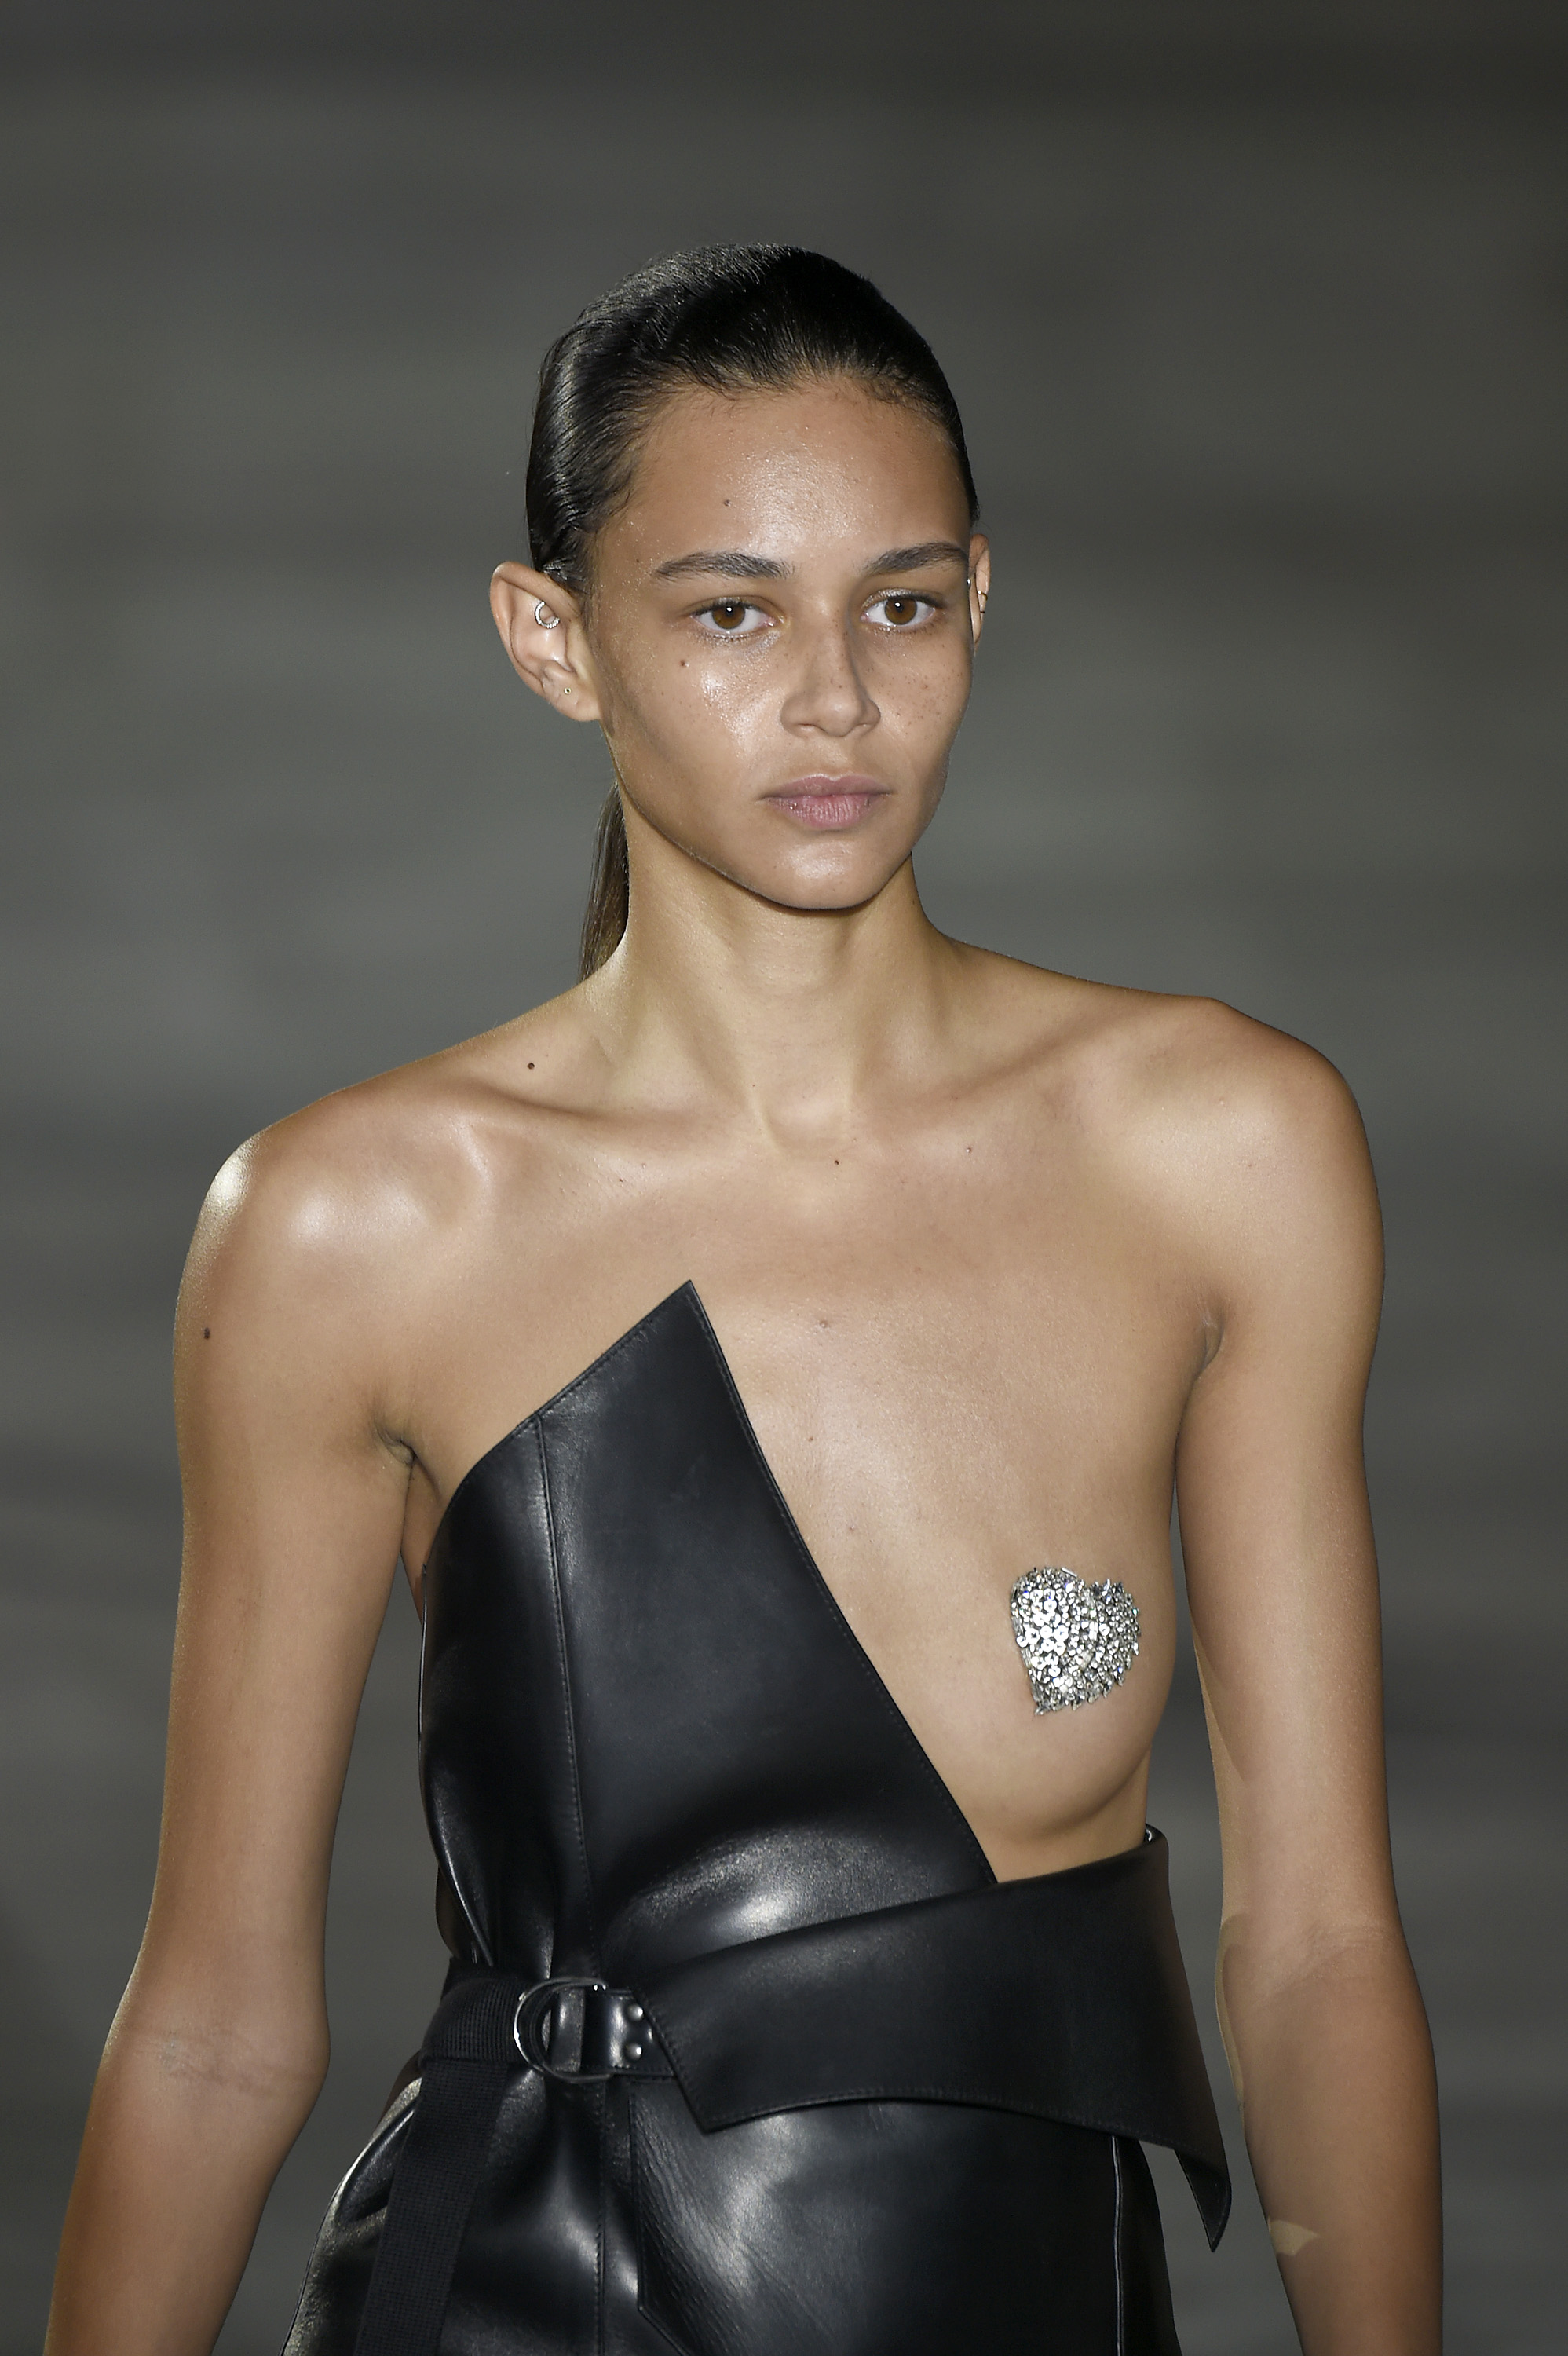 Apparently glitter nipples were a thing at Fashion Week